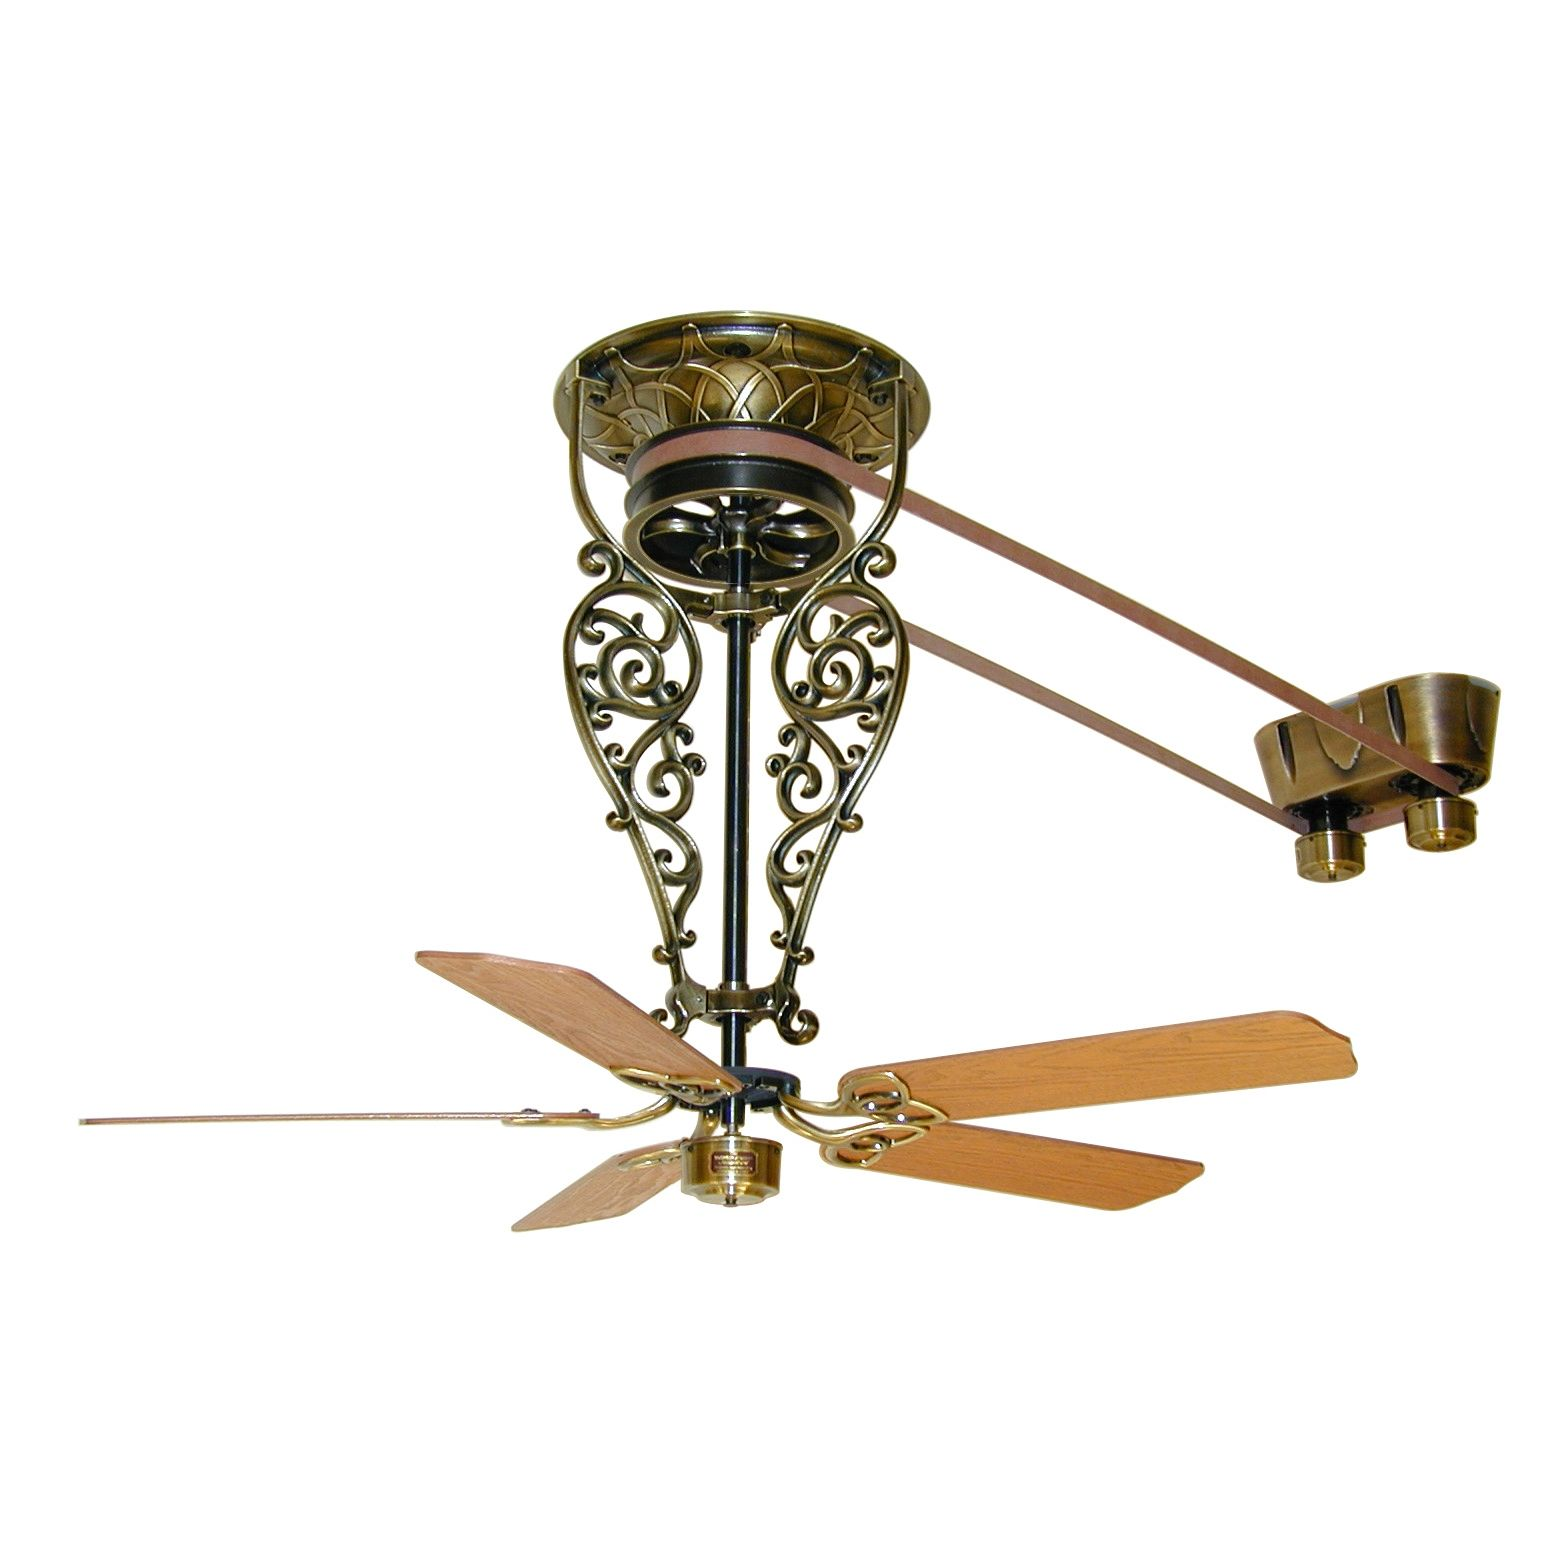 Belt Driven Ceiling Fans Http Www Bridgetonpdx Com